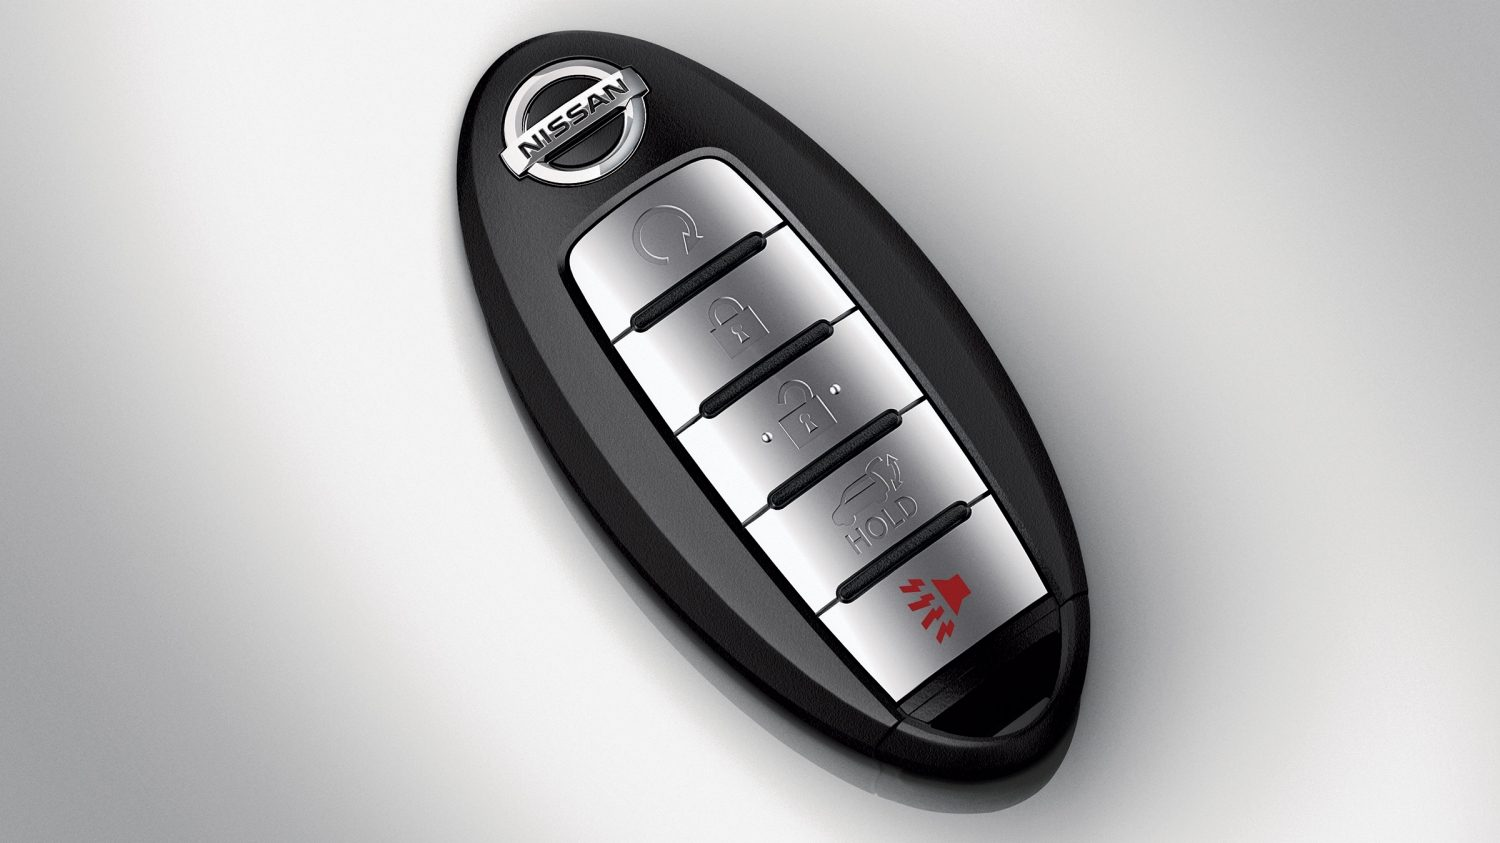 Nissan Pathfinder remote key fob